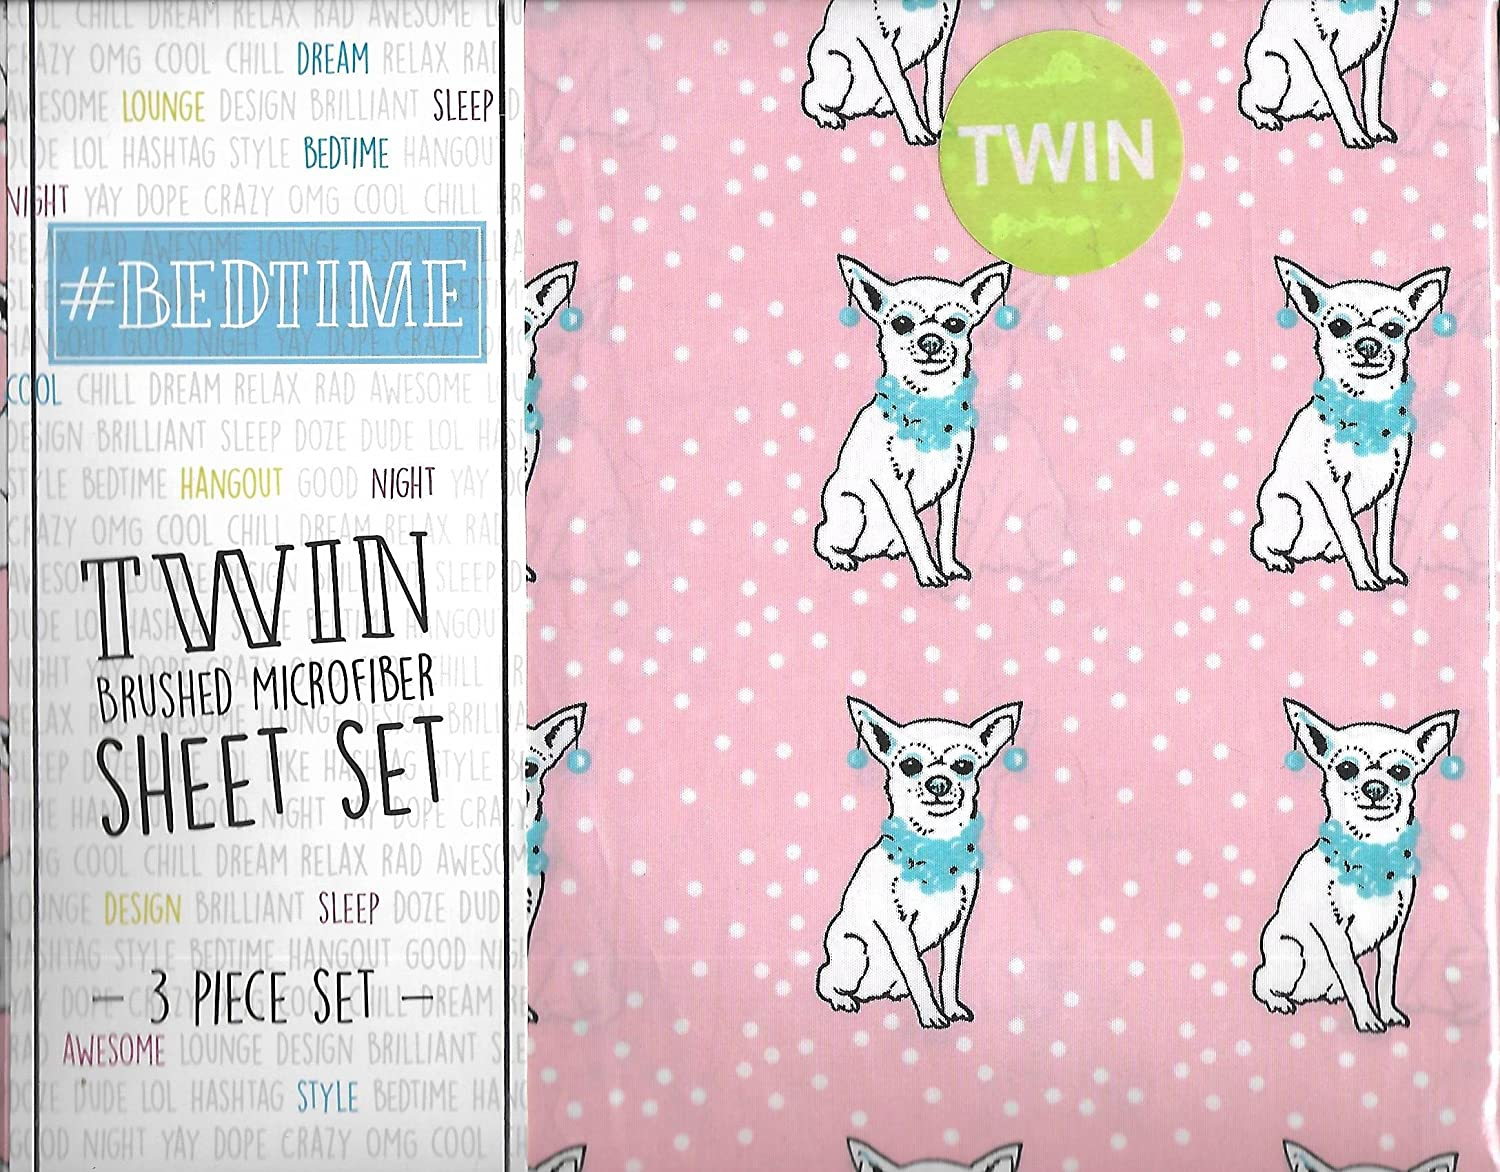 #Bedtime Pink Polka Dot Girly Chihuahua Dog Theme 3 Piece Twin Sheet Set